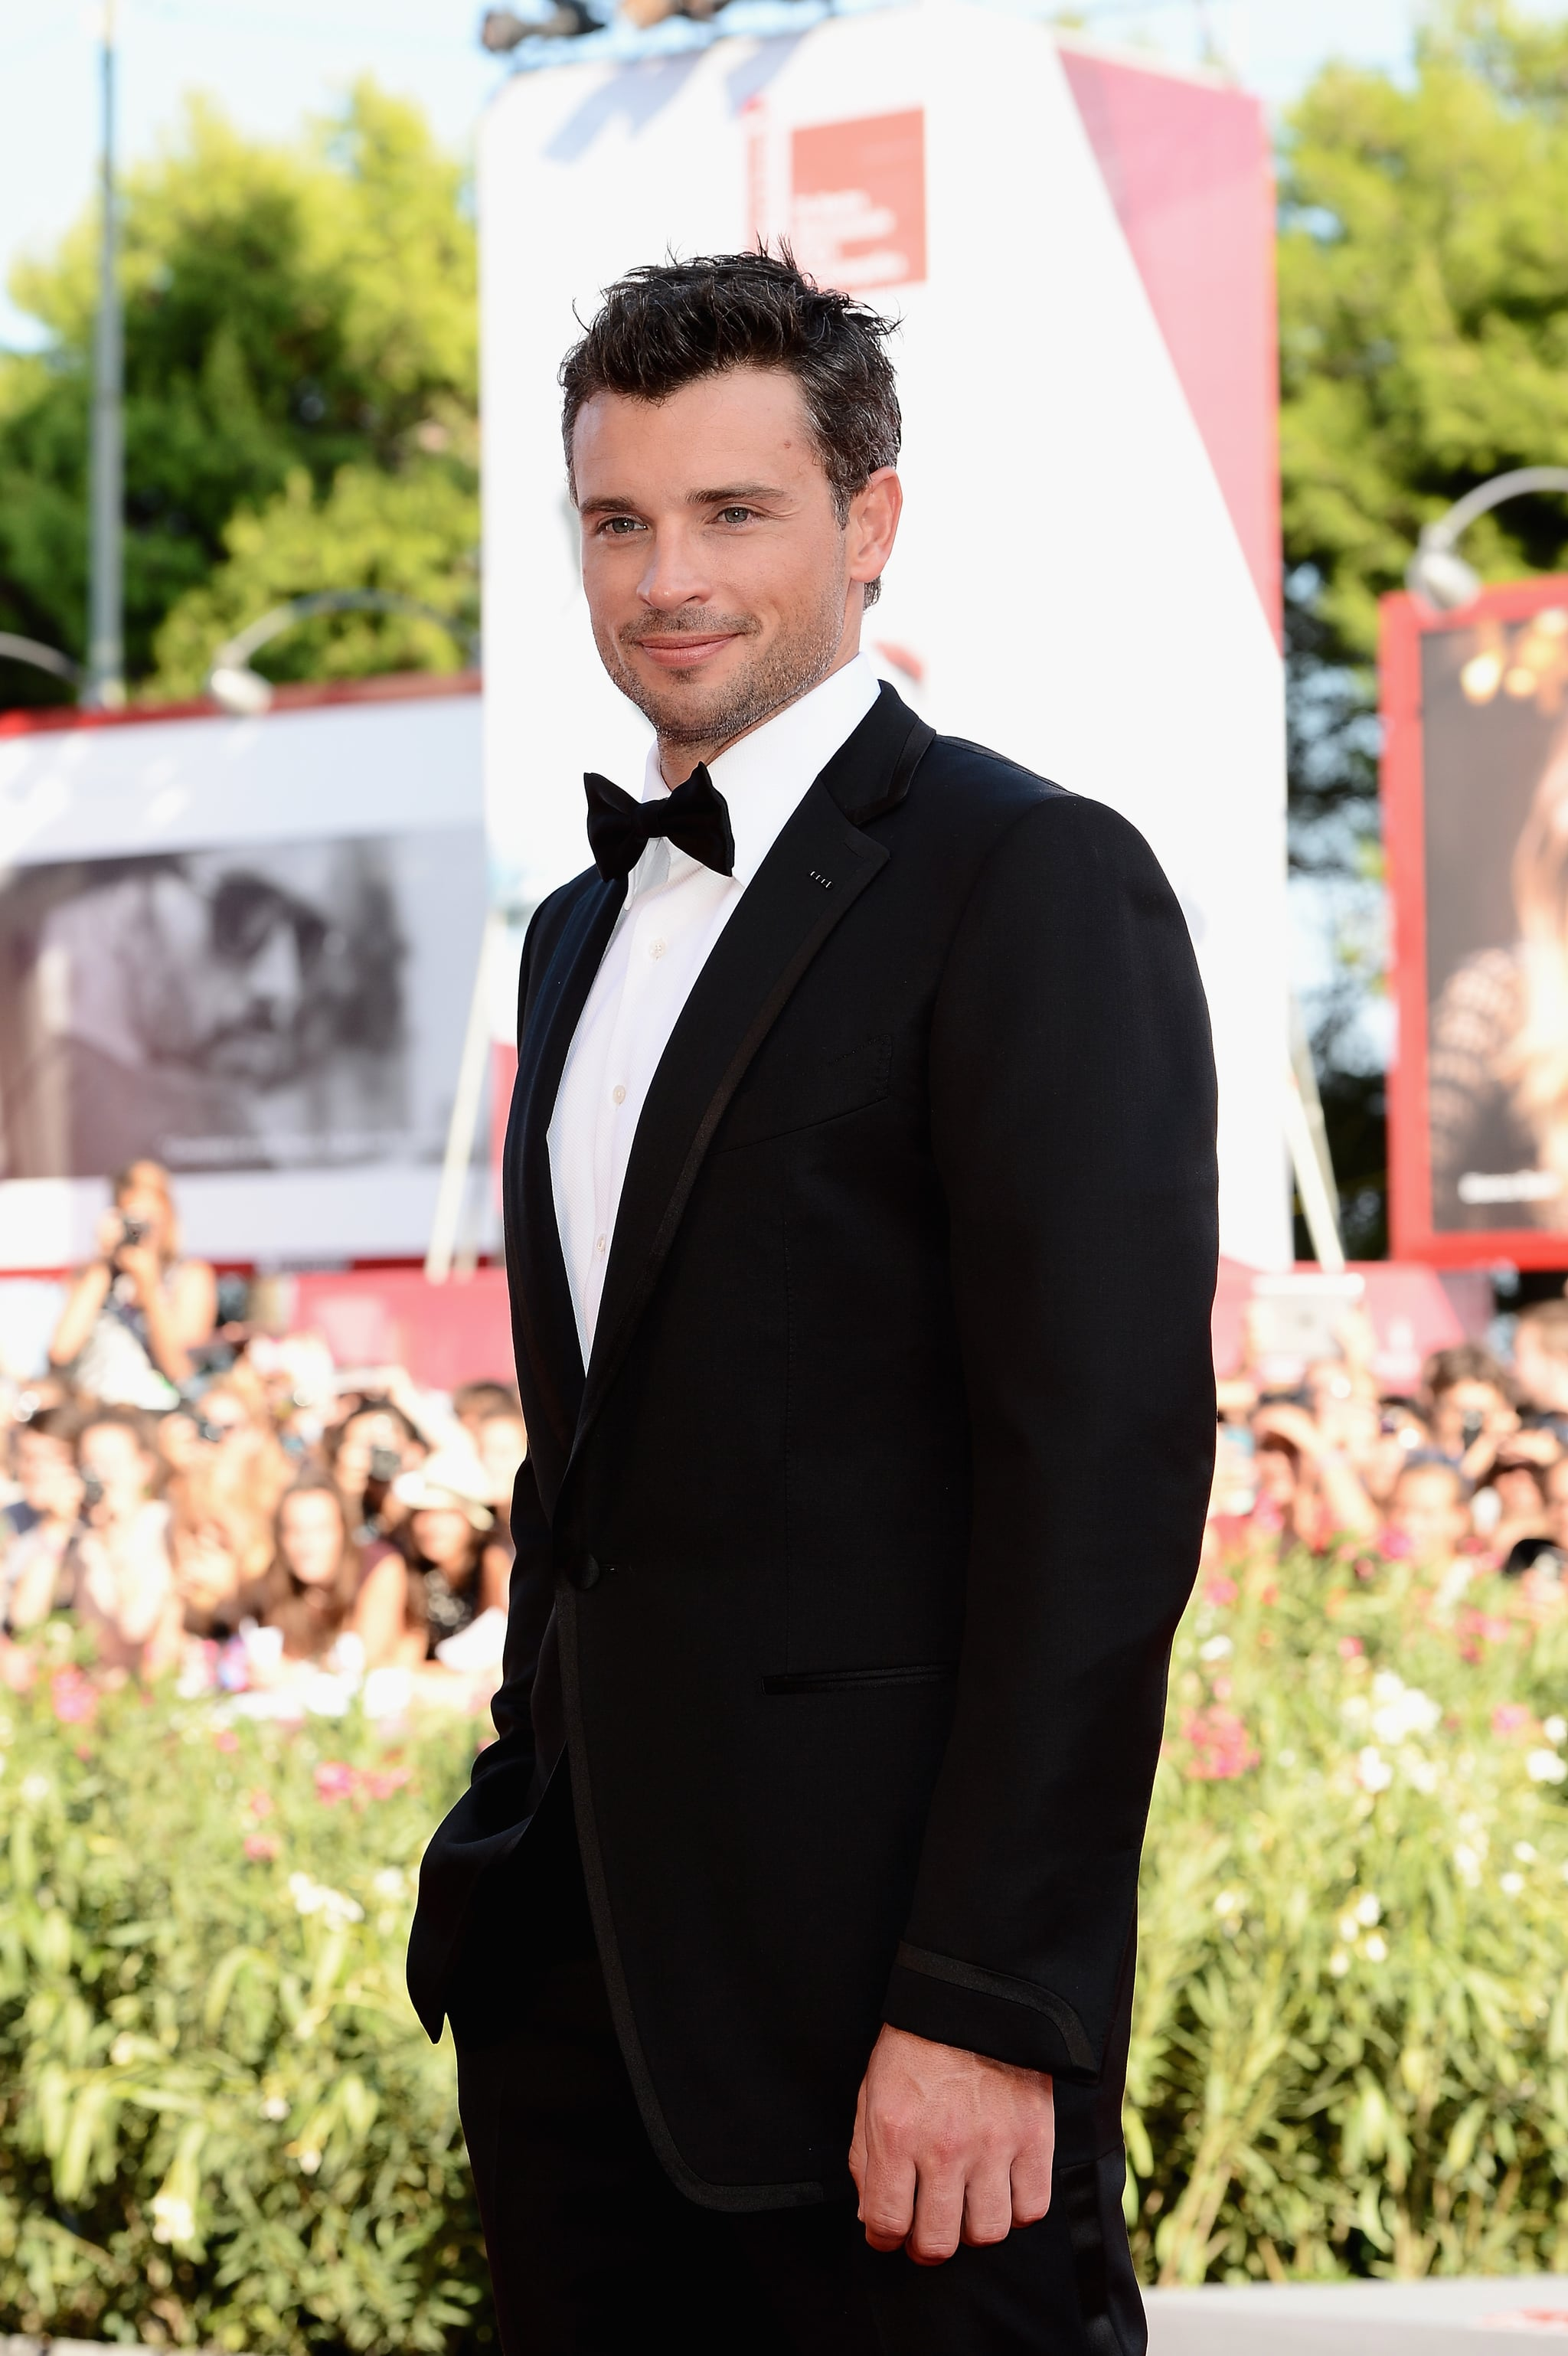 Tom Welling suited up for the Venice Film Festival.